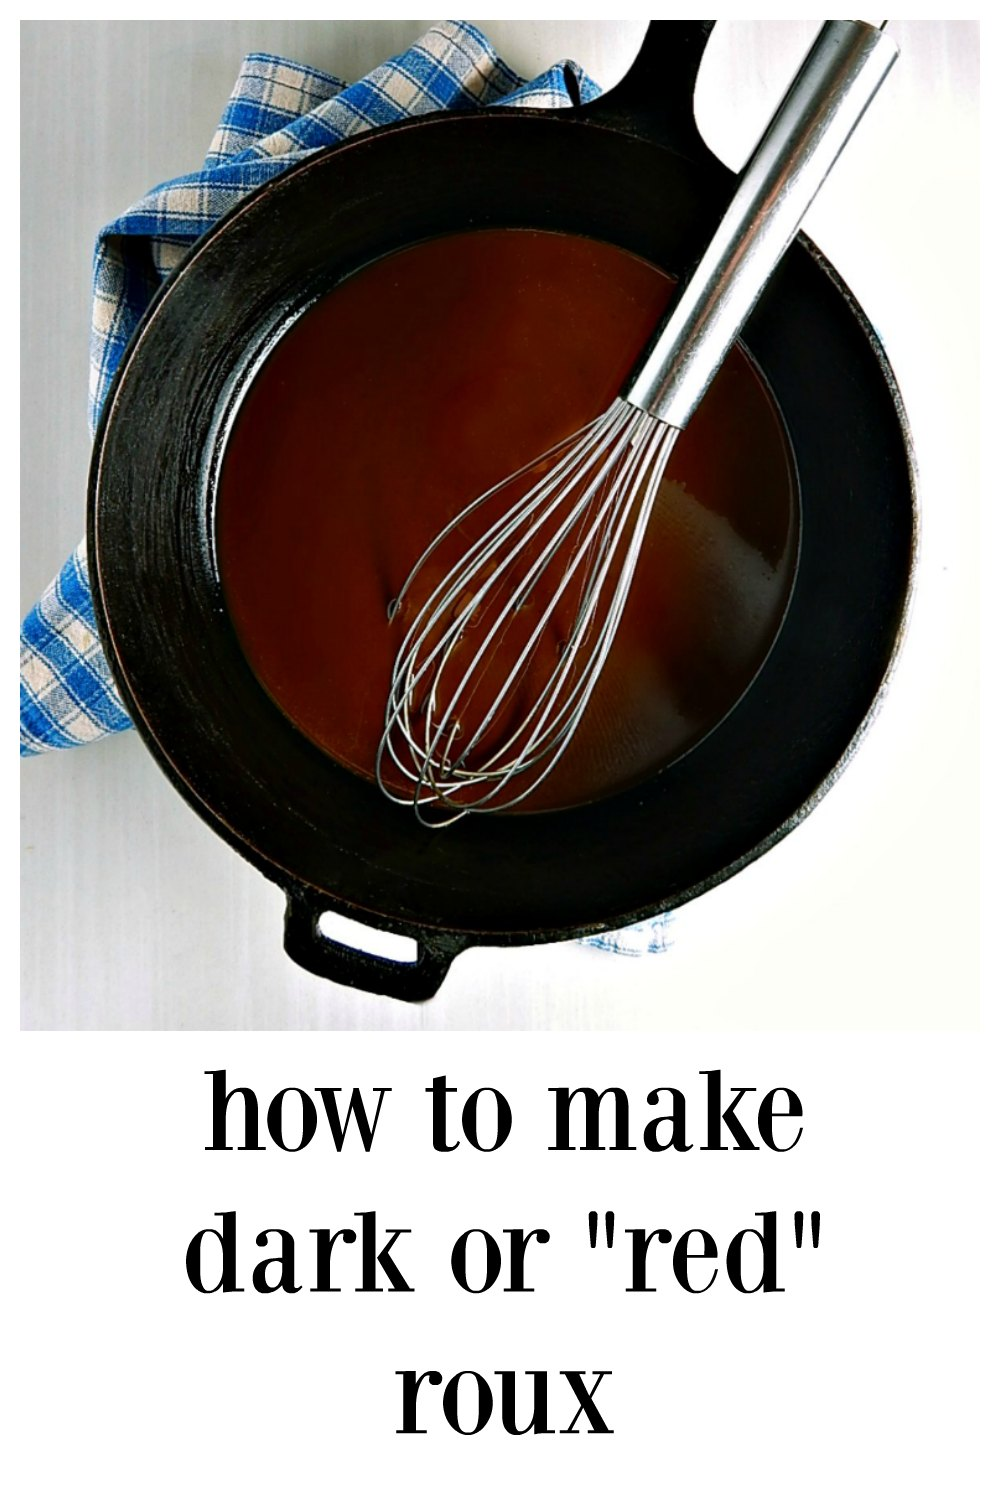 Learn to make a Dark or Red Roux to use in your Cajun or Louisiana dishes! All it takes is time and patience and you'll be rewarded with the best Roux ever! #Roux #CajunCooking #LousianaCooking #DarkRoux #RedRoux #Cajun